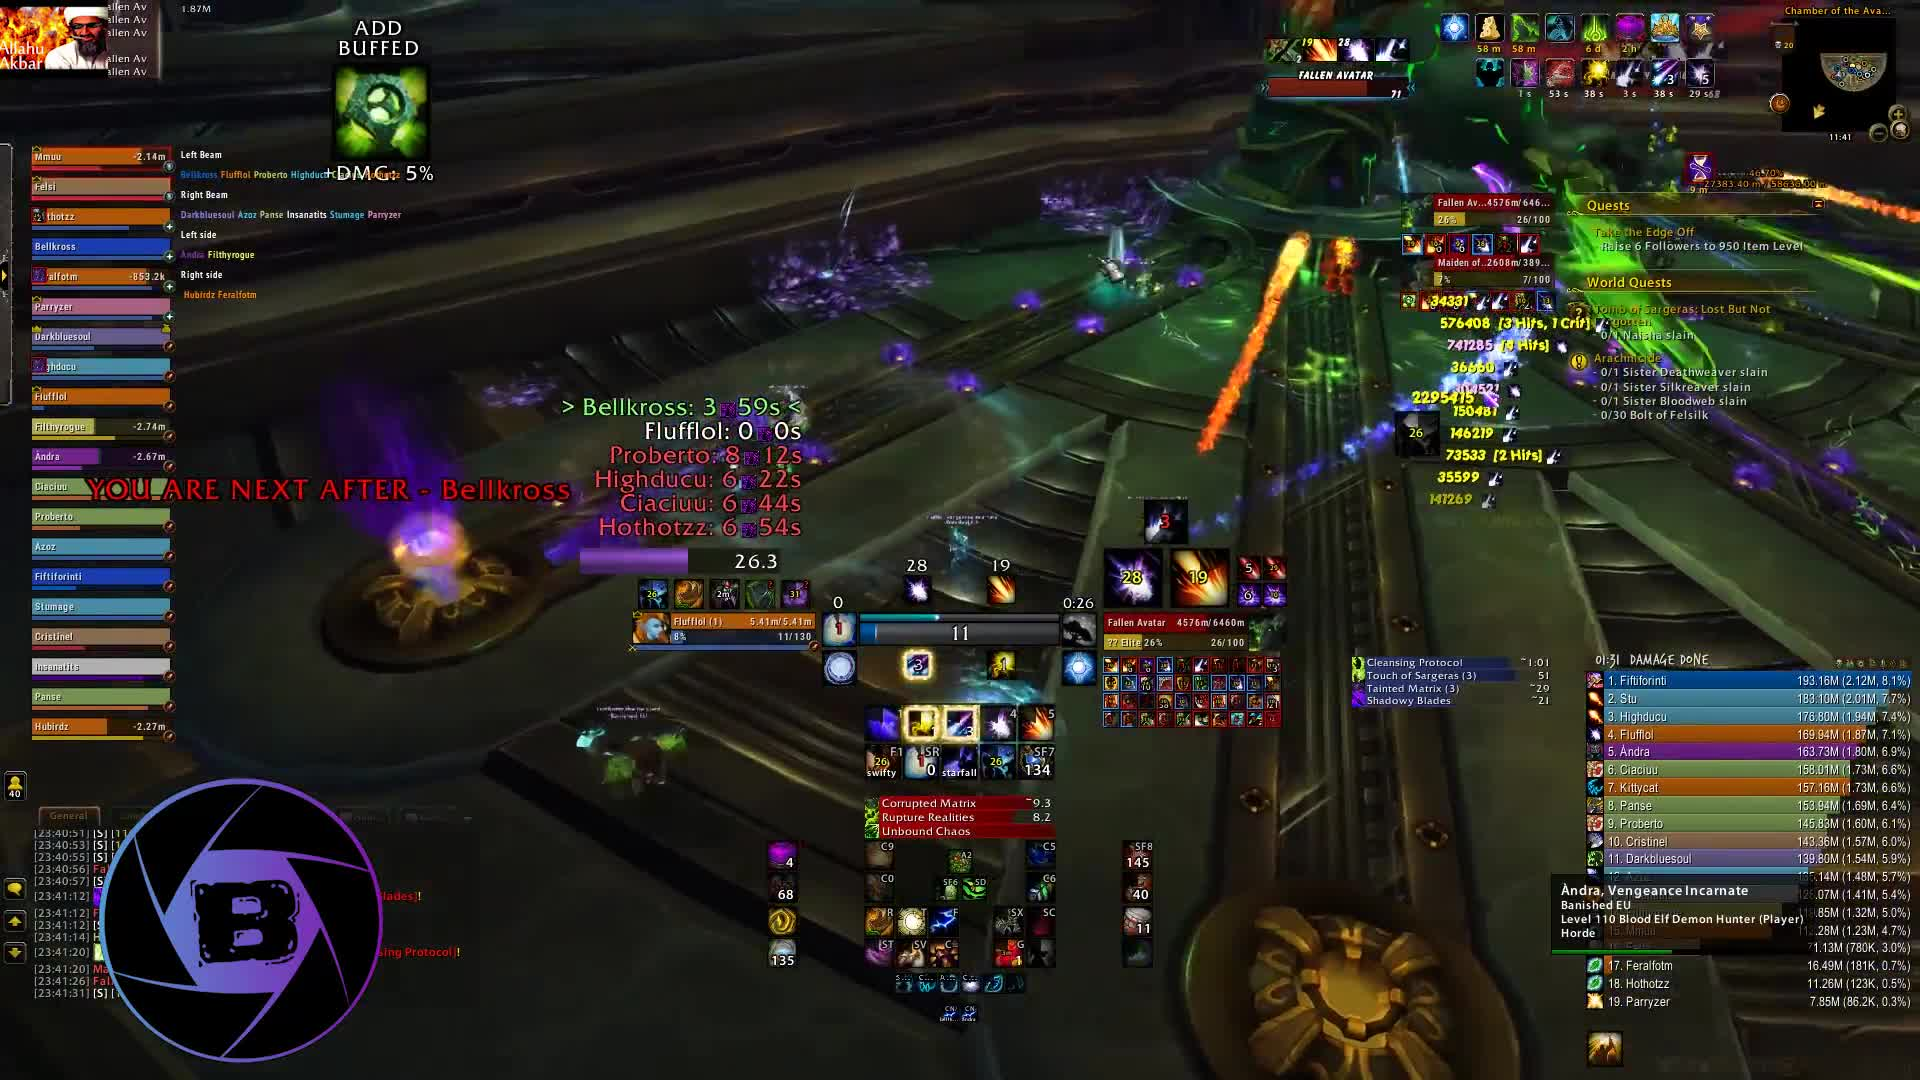 Banished Boosting Service, Banished EU, Banished EU vs Fallen Avatar Mythic, Banished Fallen Avatar, Banished Fallen Avatar Mythic, Banished Tarren Mill, Banished vs Fallen Avatar Mythic, Fallen Avatar Banished, Fallen Avatar Mythic Moonkin POV, Tomb of Sargeras Banished, Banished vs Fallen Avatar - Mythic Tomb of Sargeras GIFs